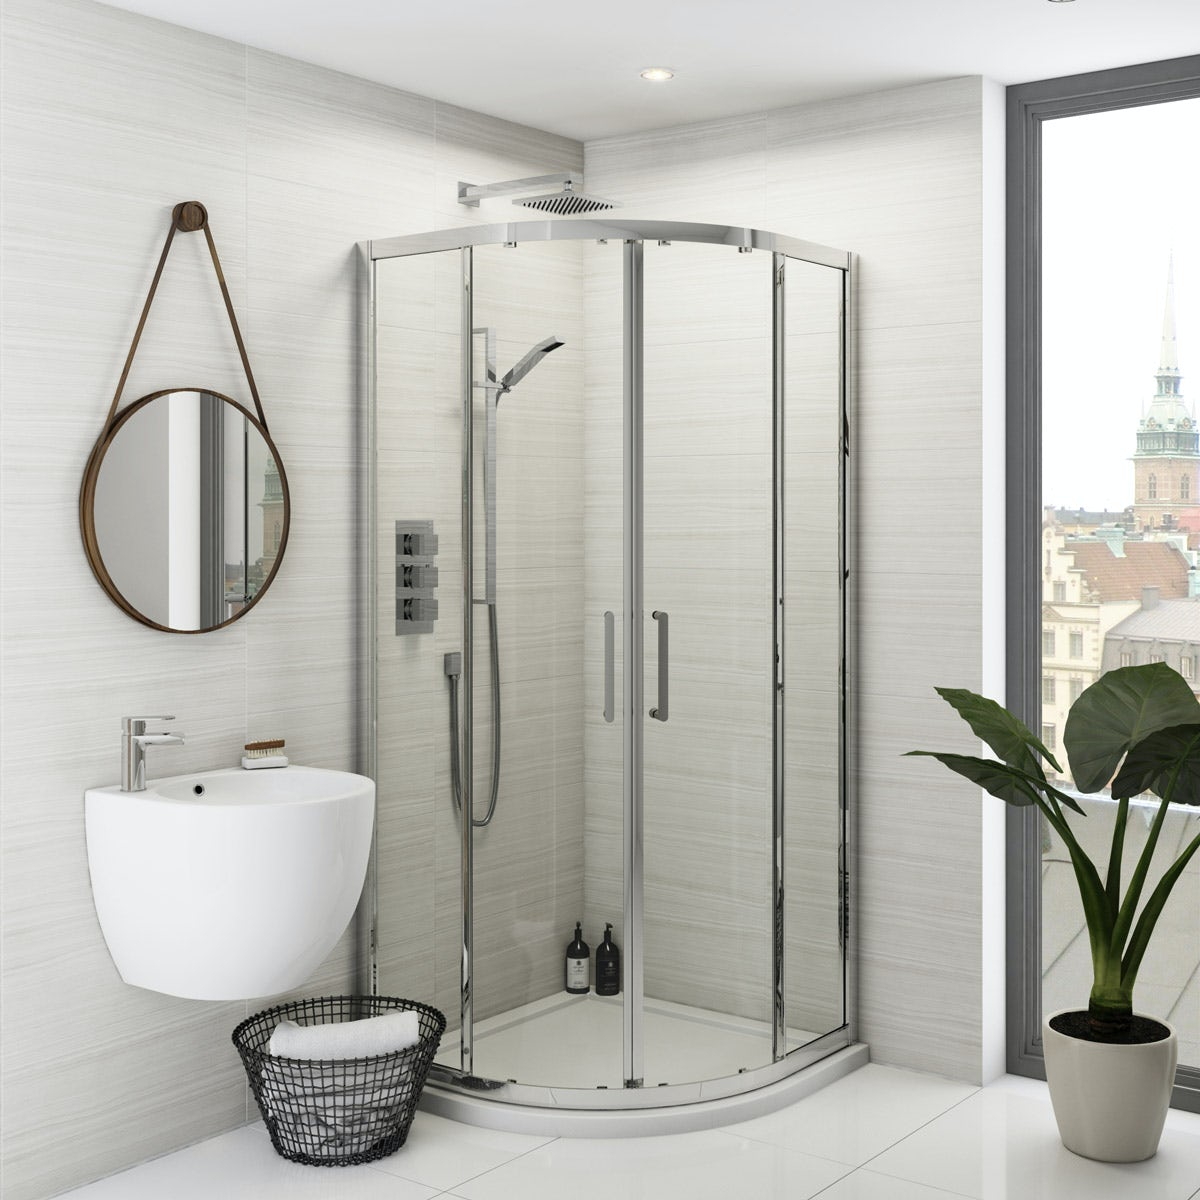 Free delivery Mode Ellis premium 8mm easy clean quadrant shower enclosure. Mode Ellis premium 8mm easy clean quadrant shower enclosure 1000 x